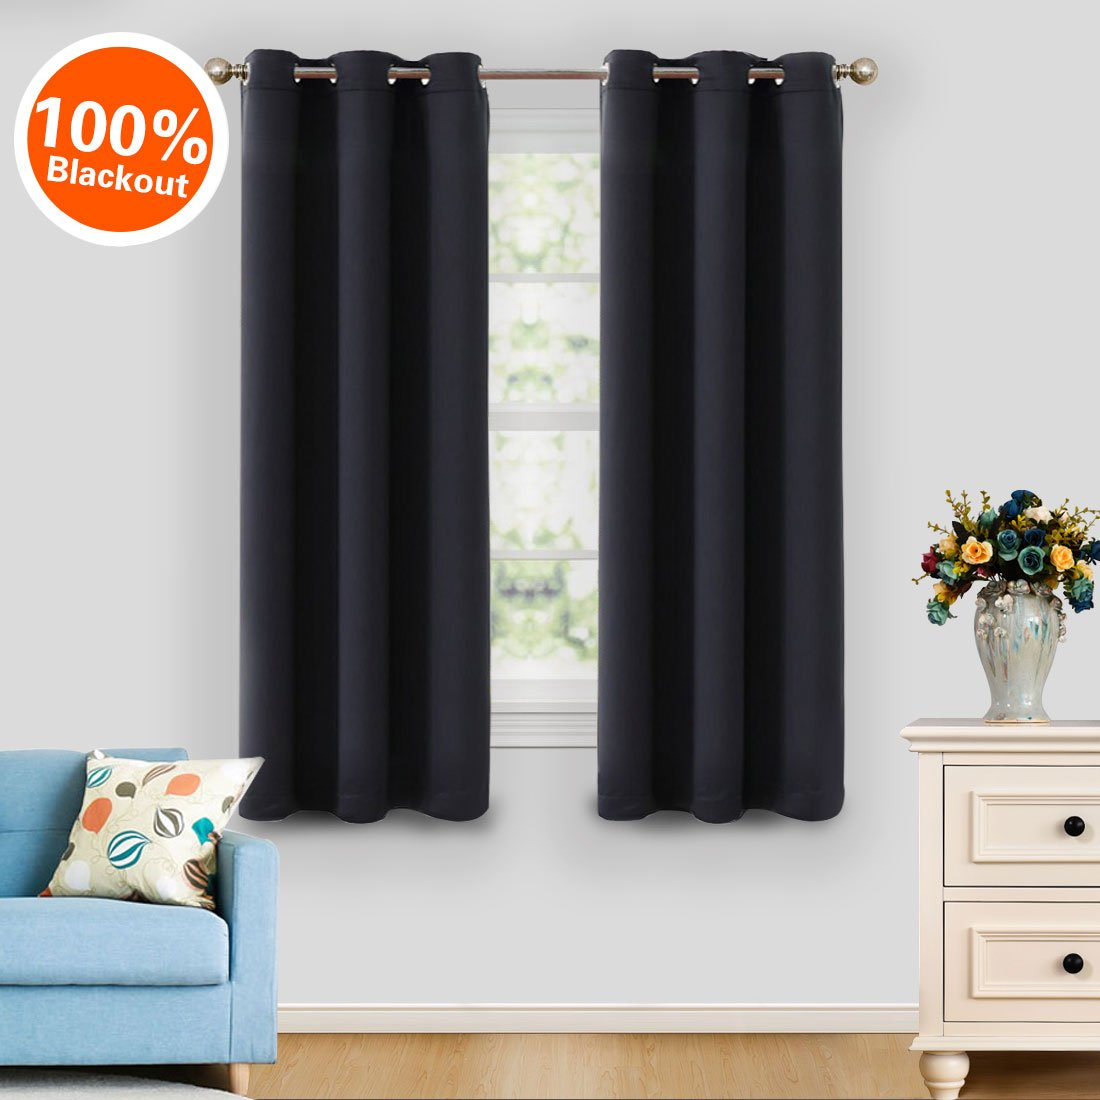 MASVIS Blackout Curtains Thermal Insulated Grommet Drapes for Bedroom